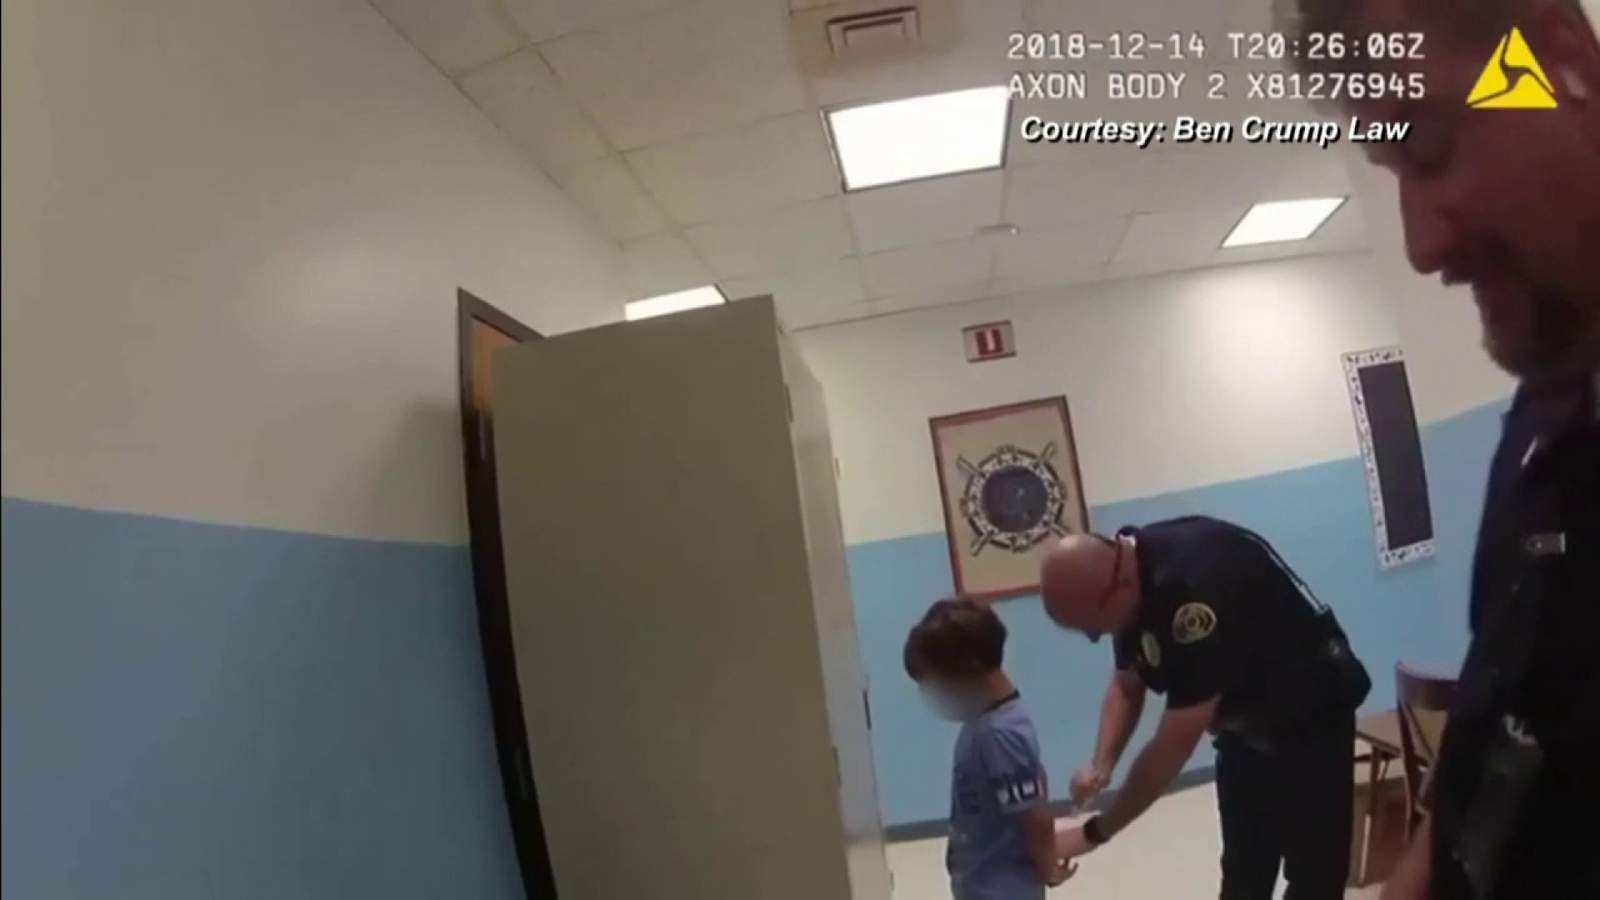 Video Shows Officers Arrest, Try To Handcuff 8-Year-Old